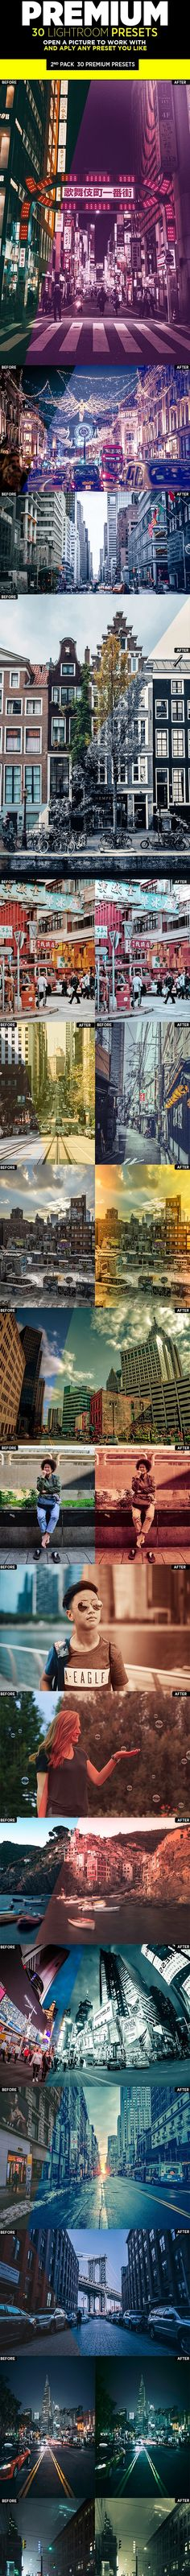 Buy 30 Premium Lightroom Presets by on GraphicRiver. This premium set of Lightroom presets includes 30 individual presets designed for every kind of images.